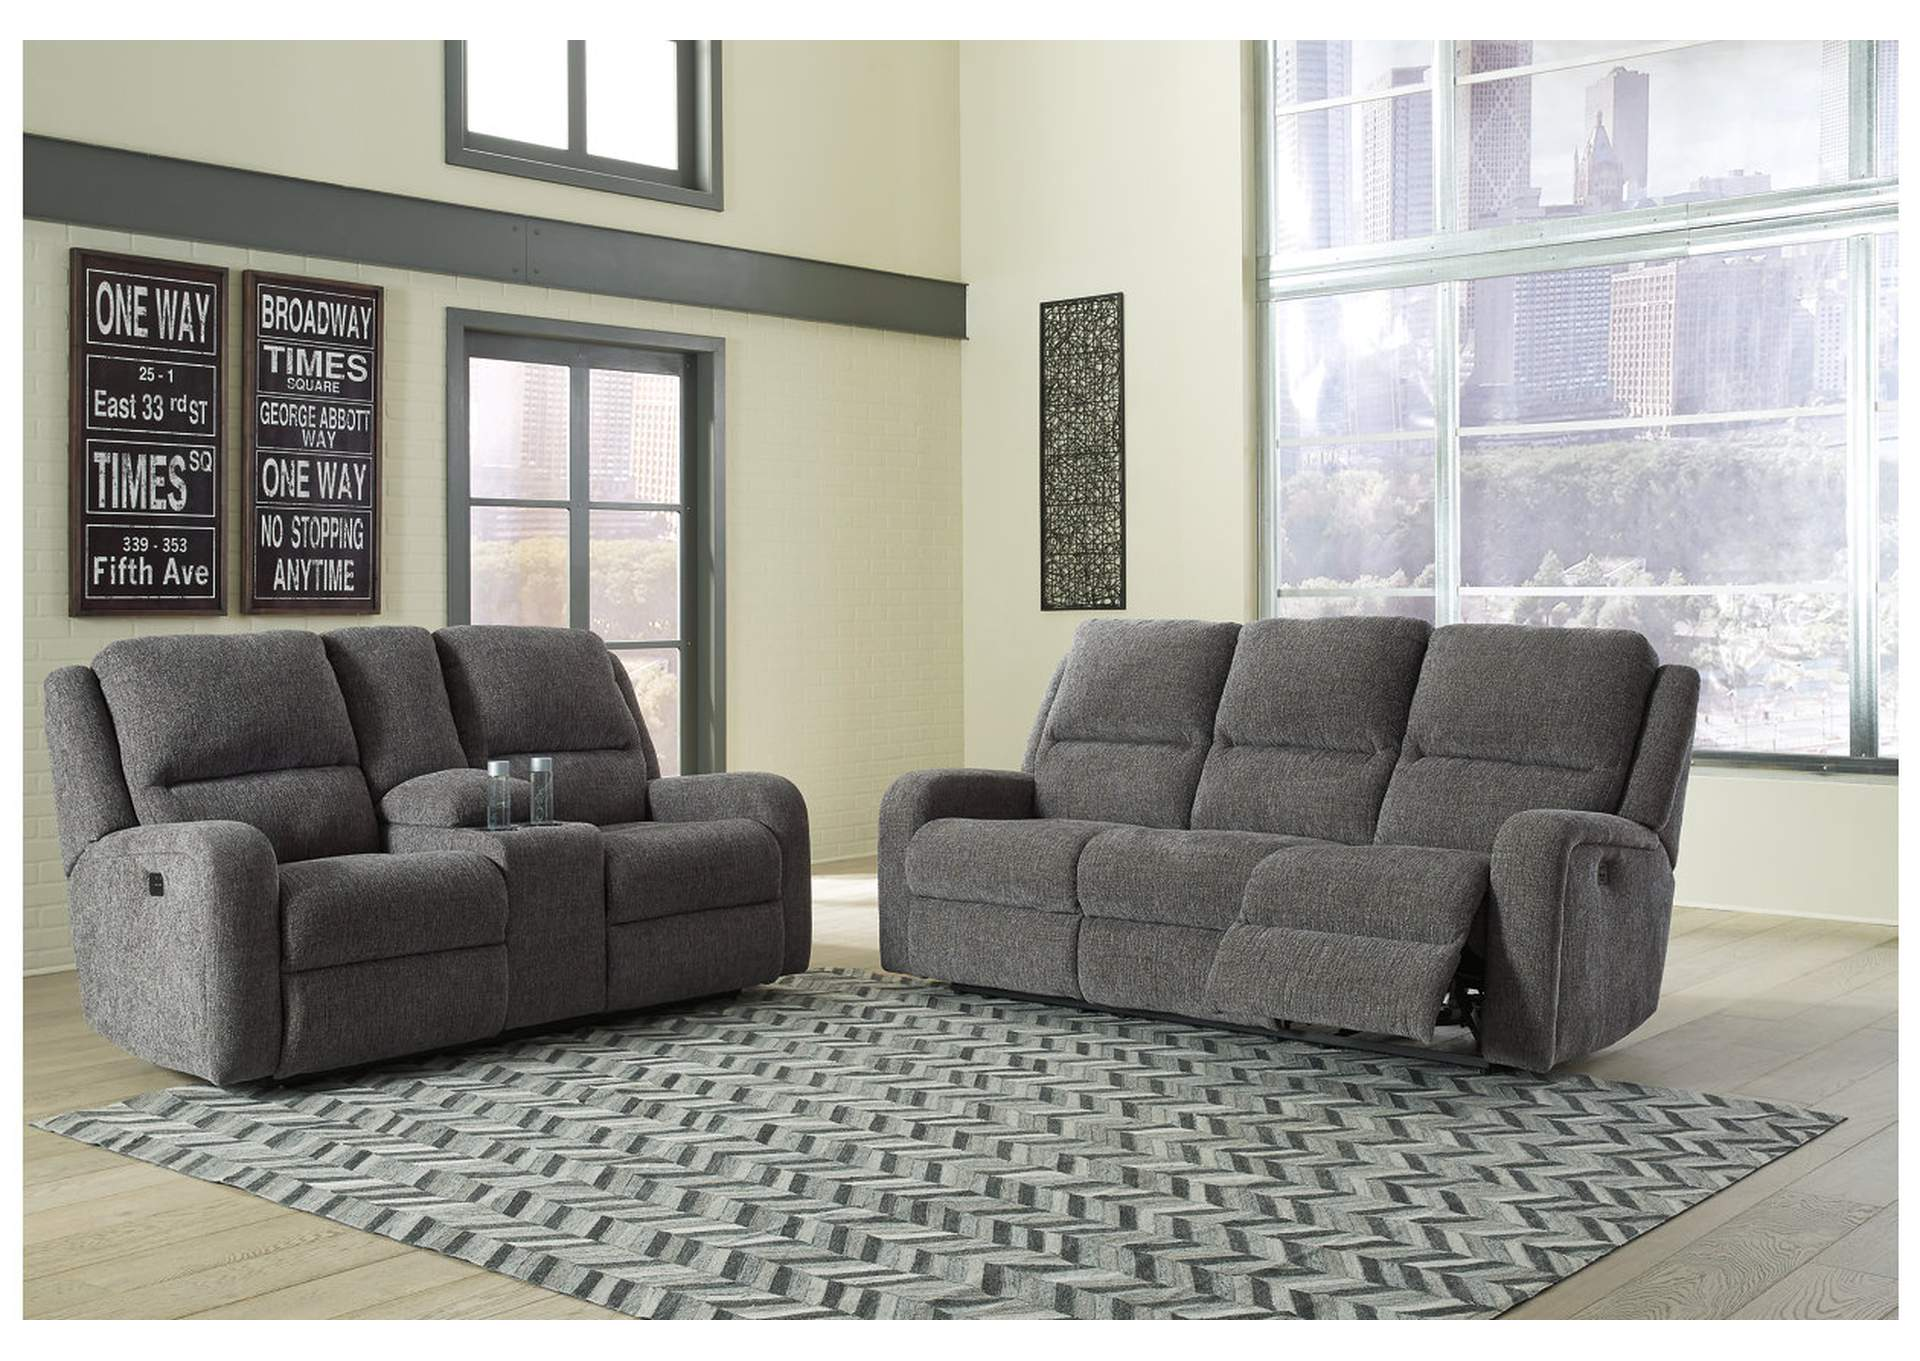 Krismen Charcoal Power Reclining Sofa And Loveseat W/Adjustable  Headrest,Signature Design By Ashley